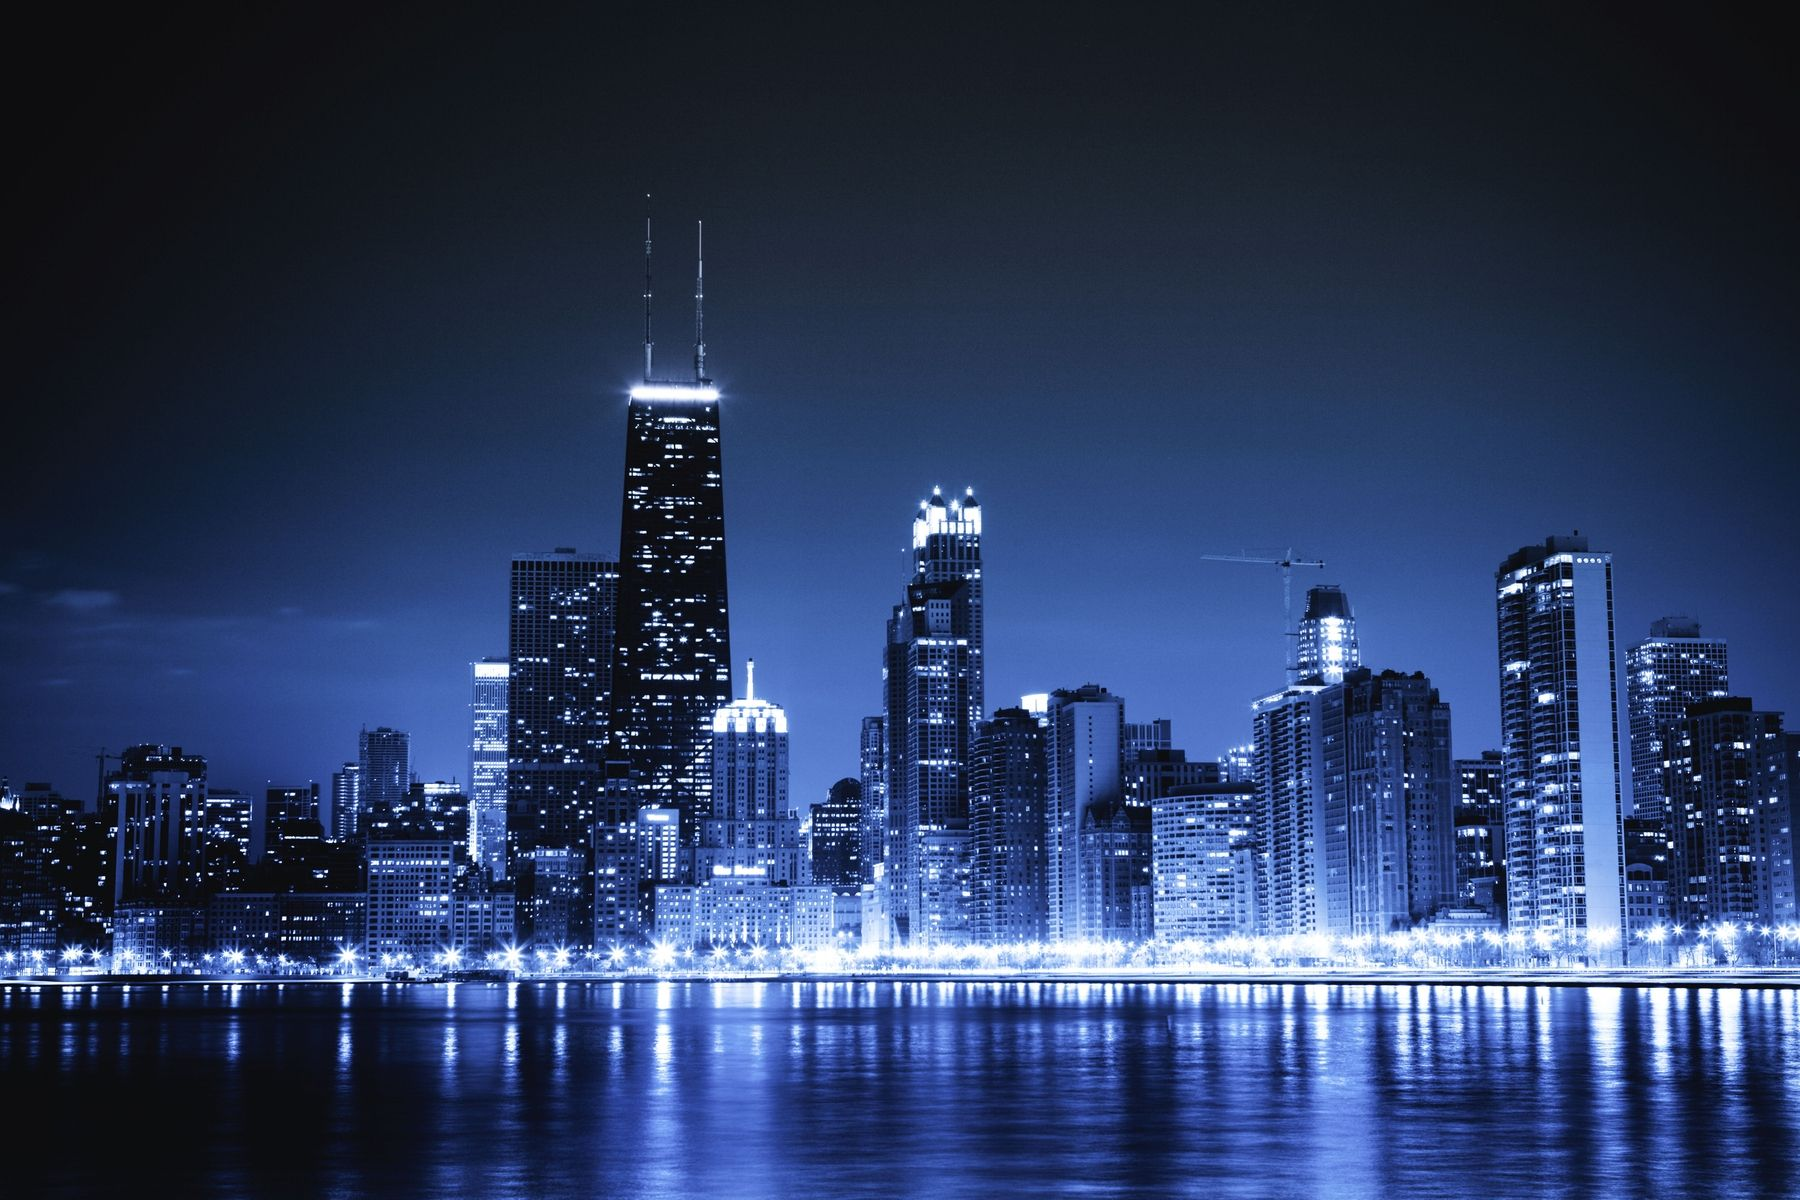 Chicago By Night Wallpaper City Lights At Night Chicago Skyline Skyline